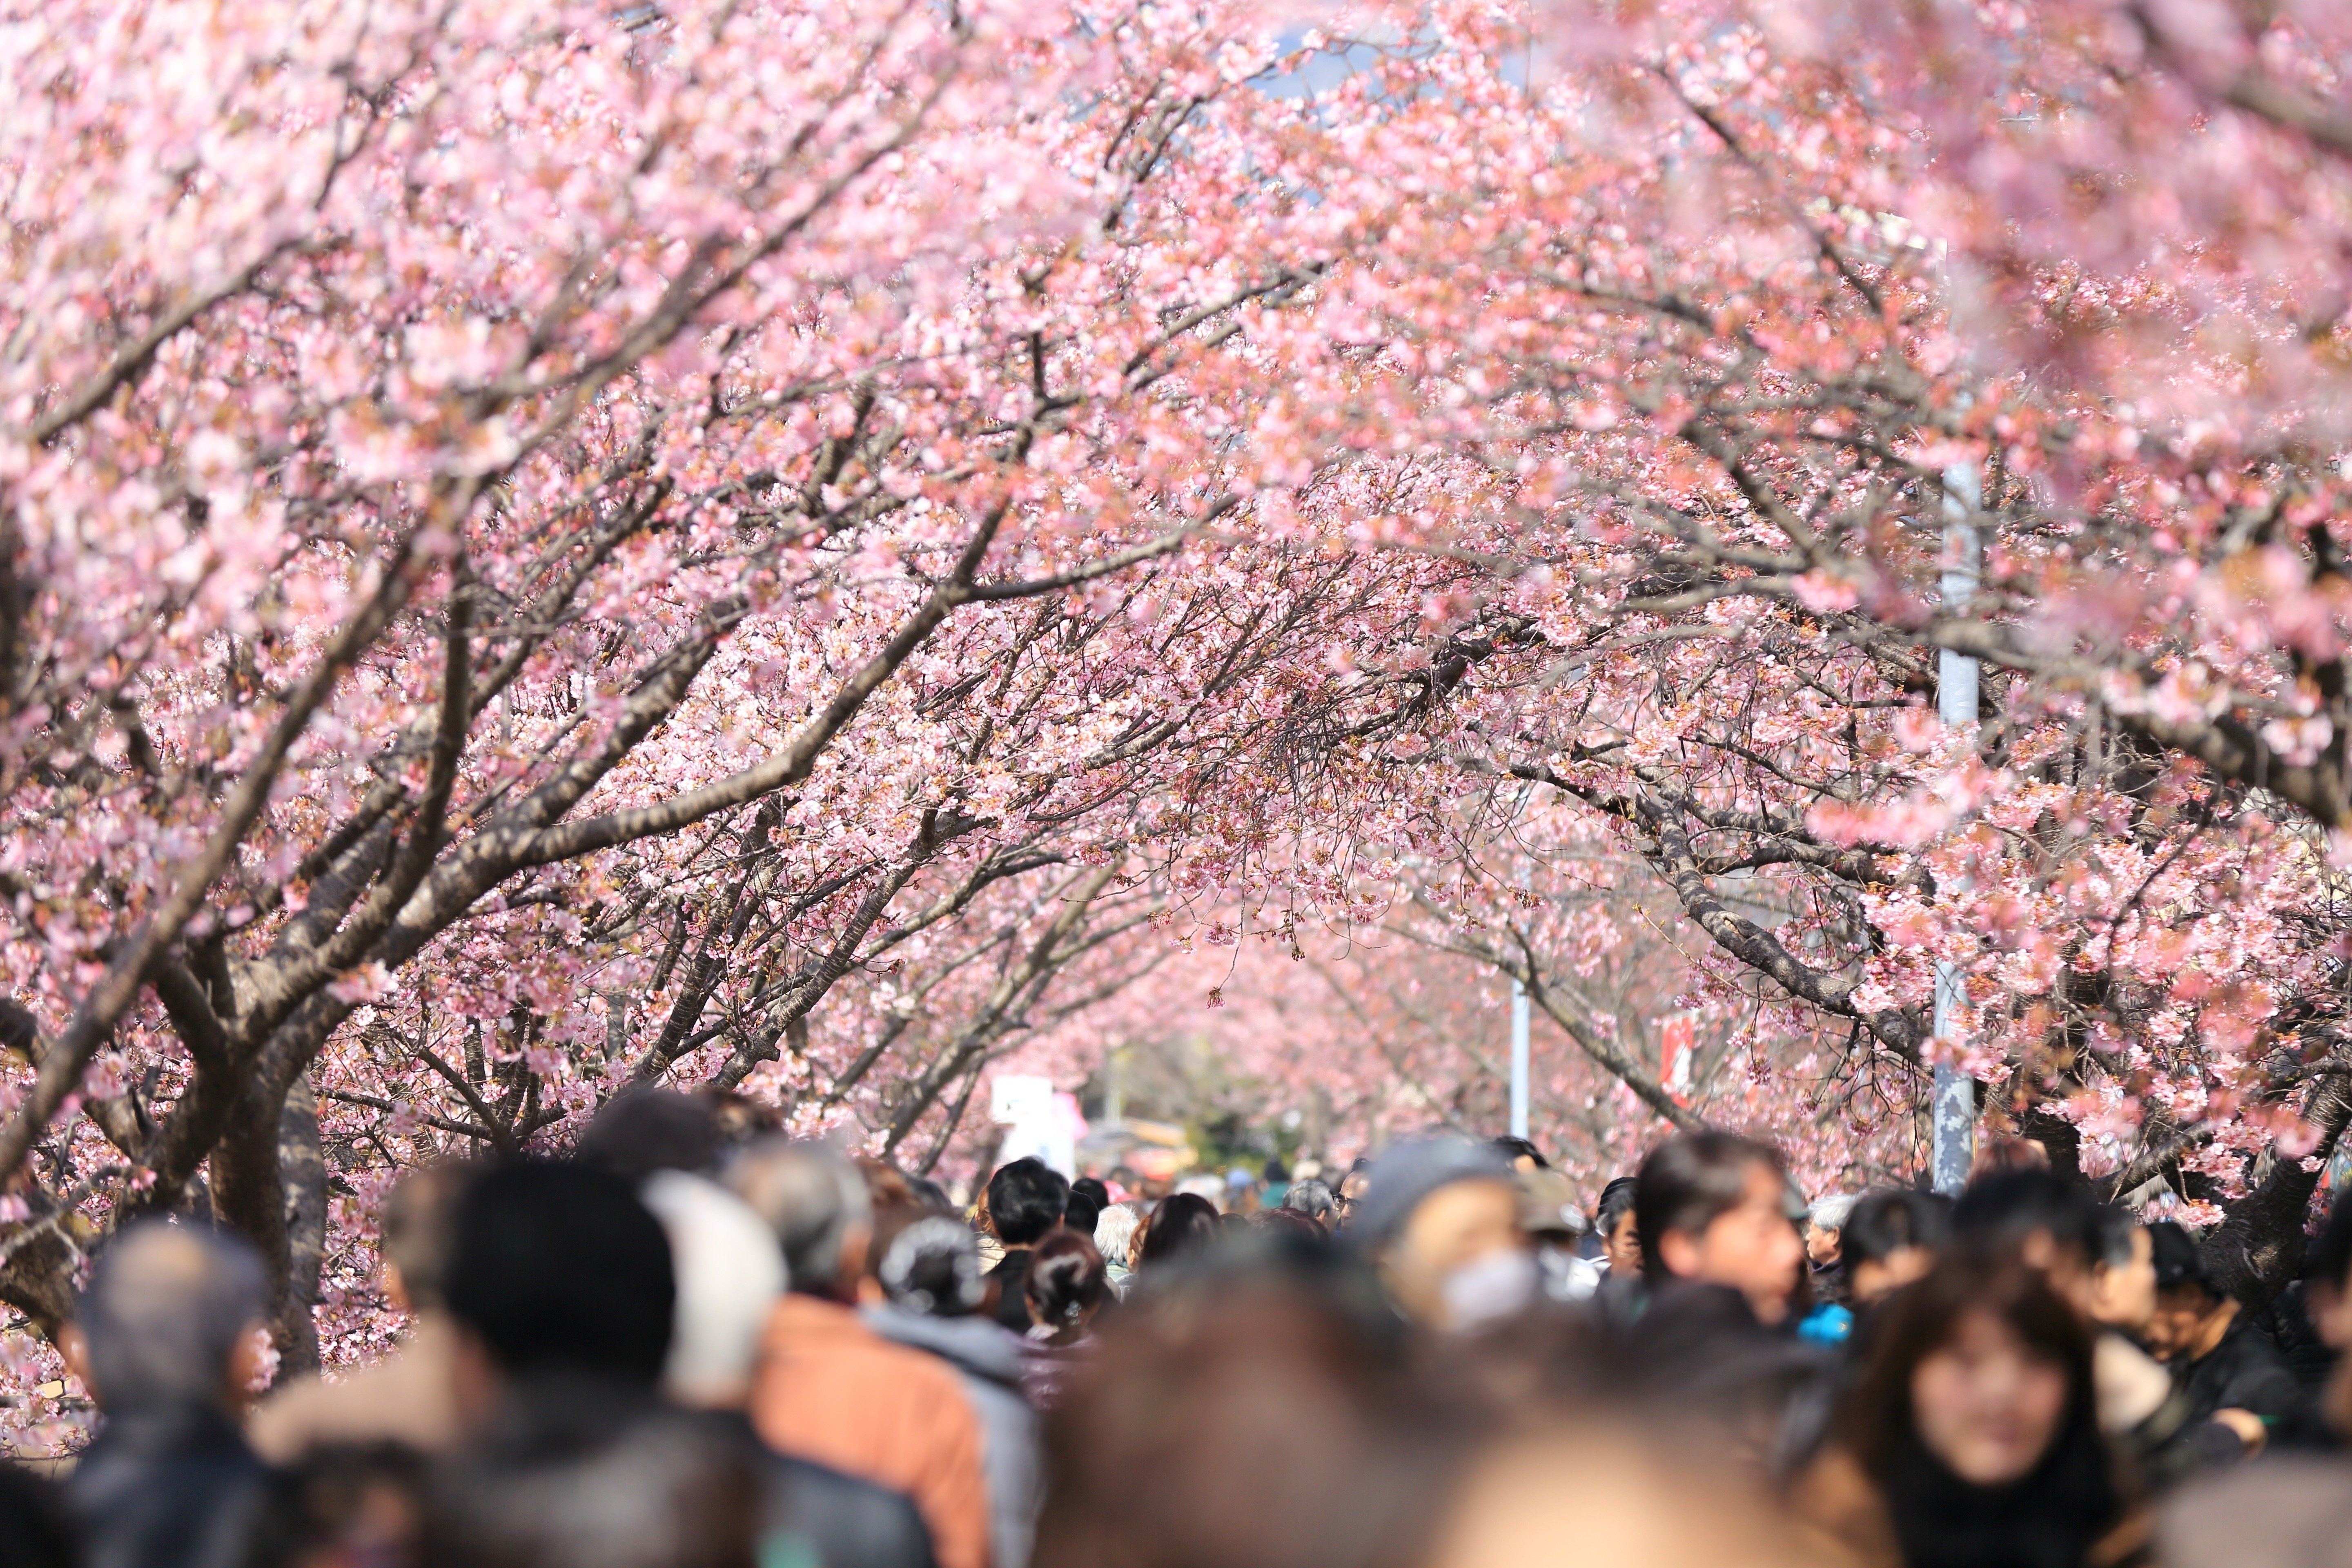 Cherry blossom and people.